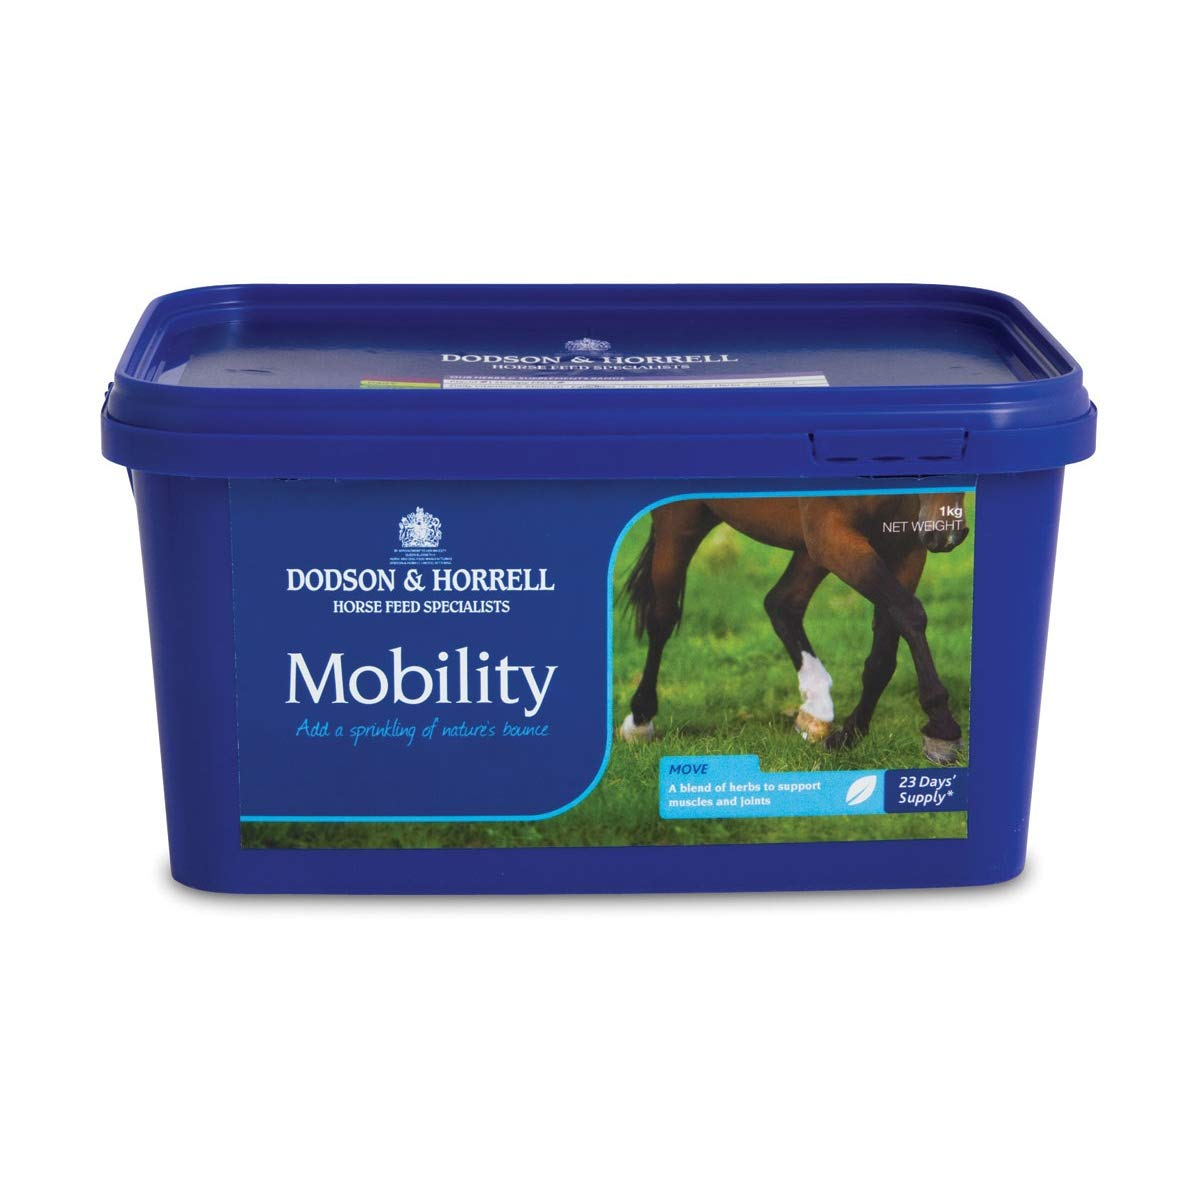 May Vary 5.5lb May Vary 5.5lb Dodson & Horrell Mobility Supplement For Horses (5.5lb) (May Vary)